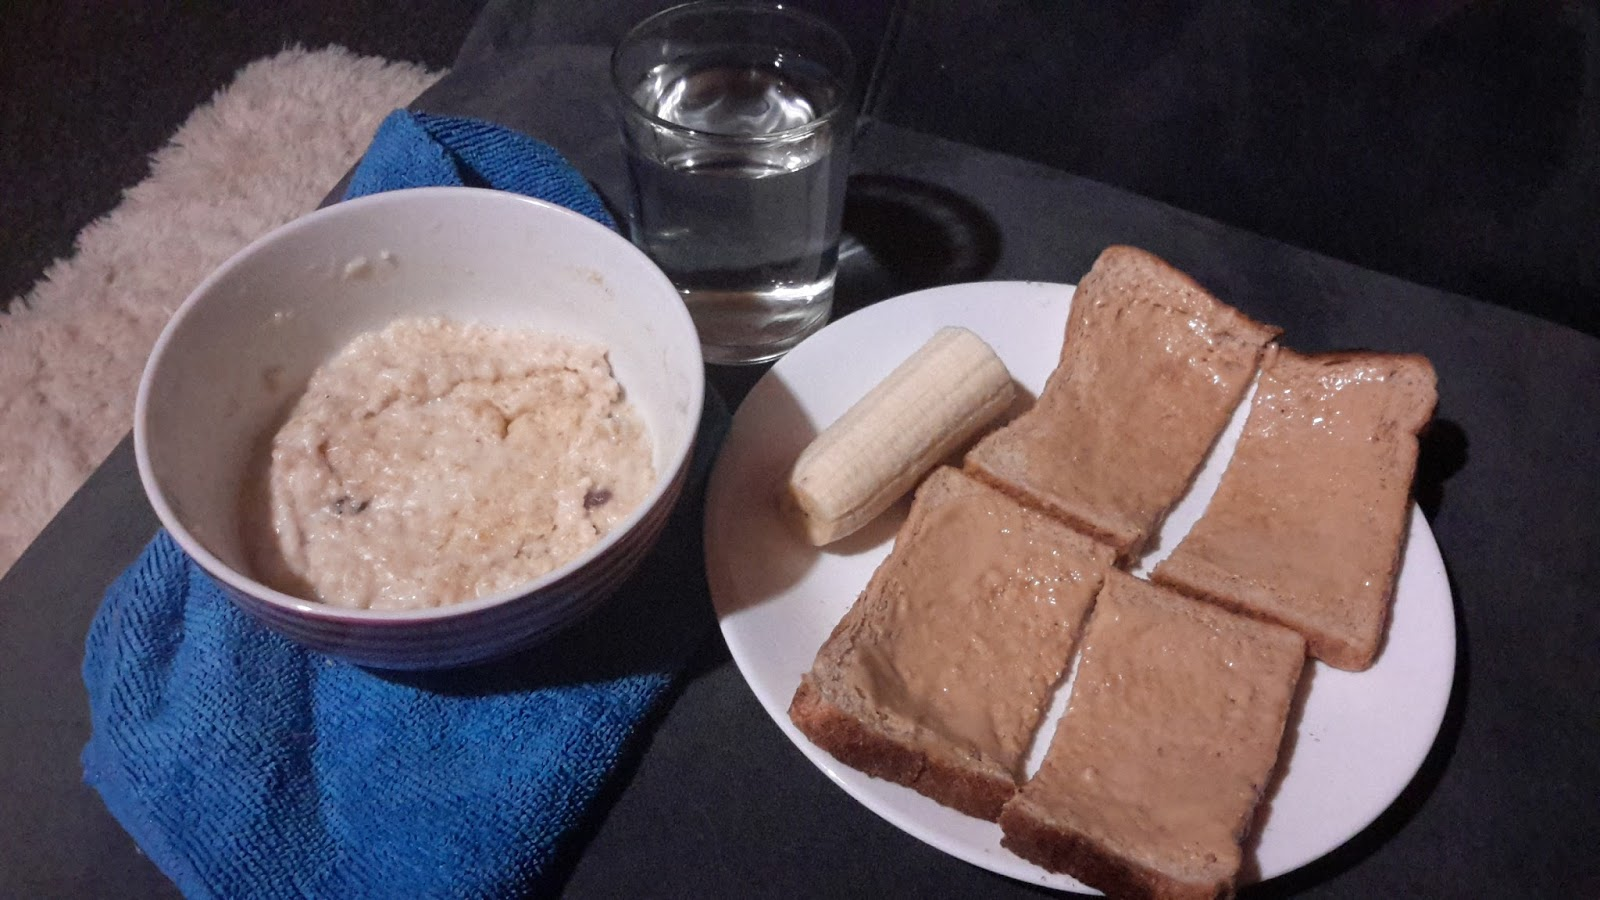 Fighting Anorexia: Photo food diary from yesterday